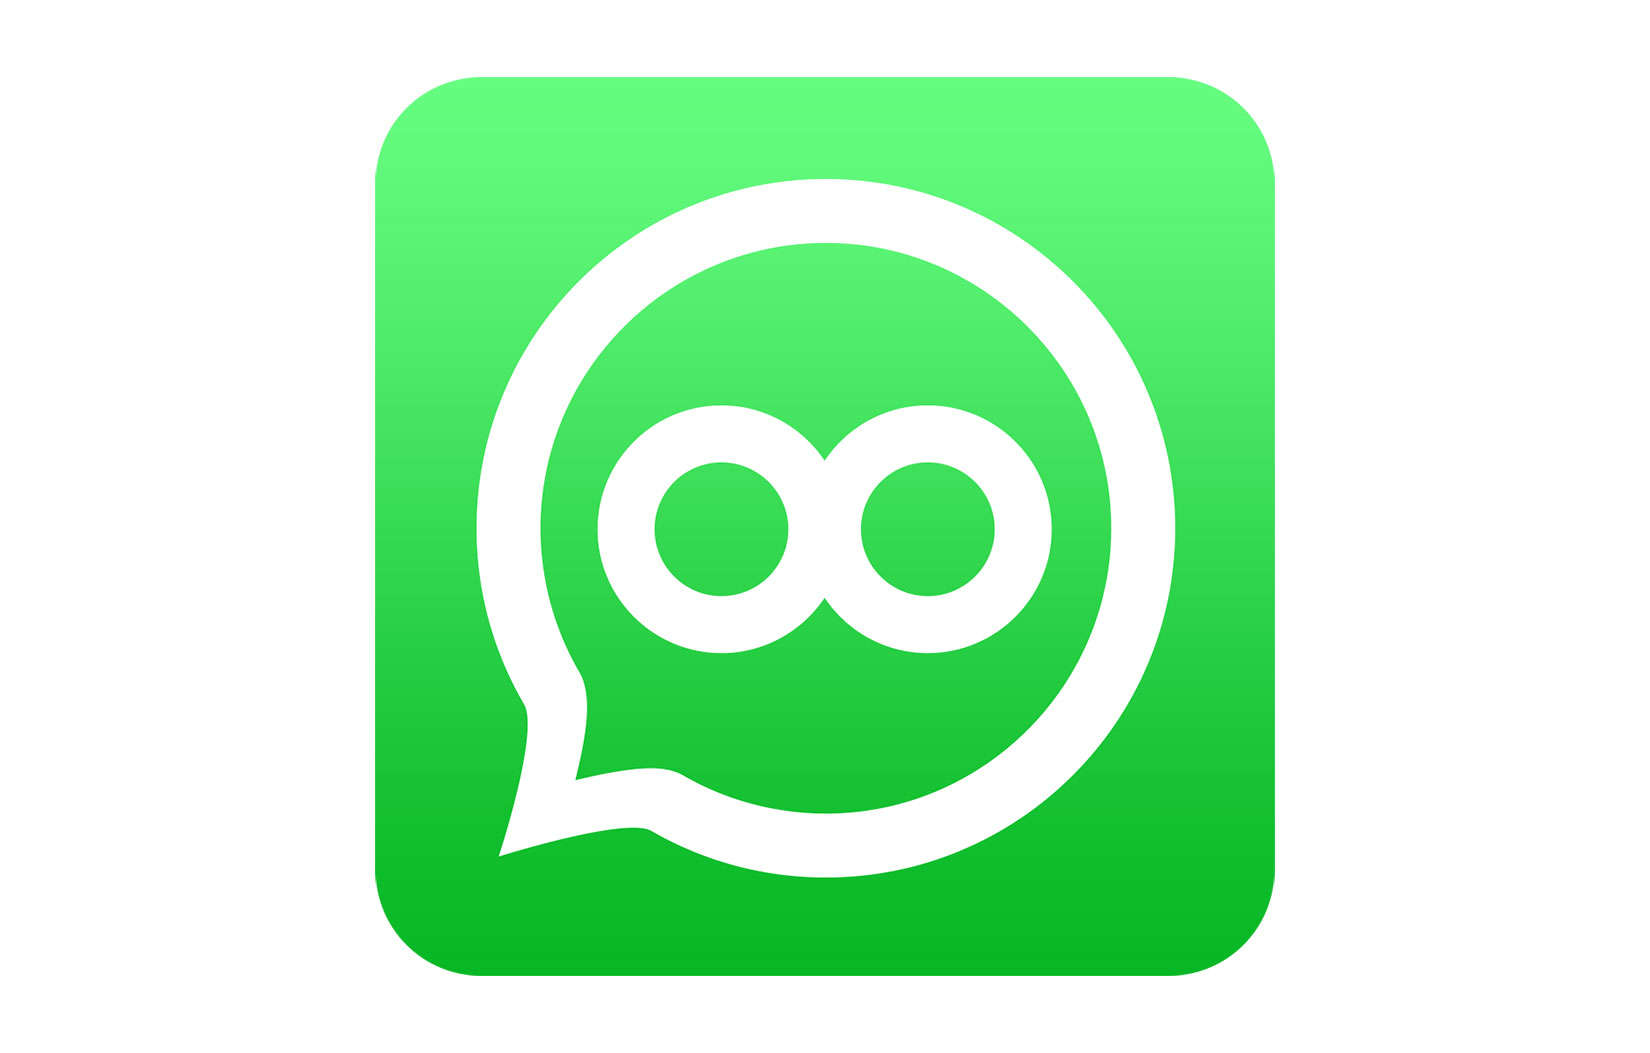 SOMA Messenger is gaining popularity around the world for free and secure communication.